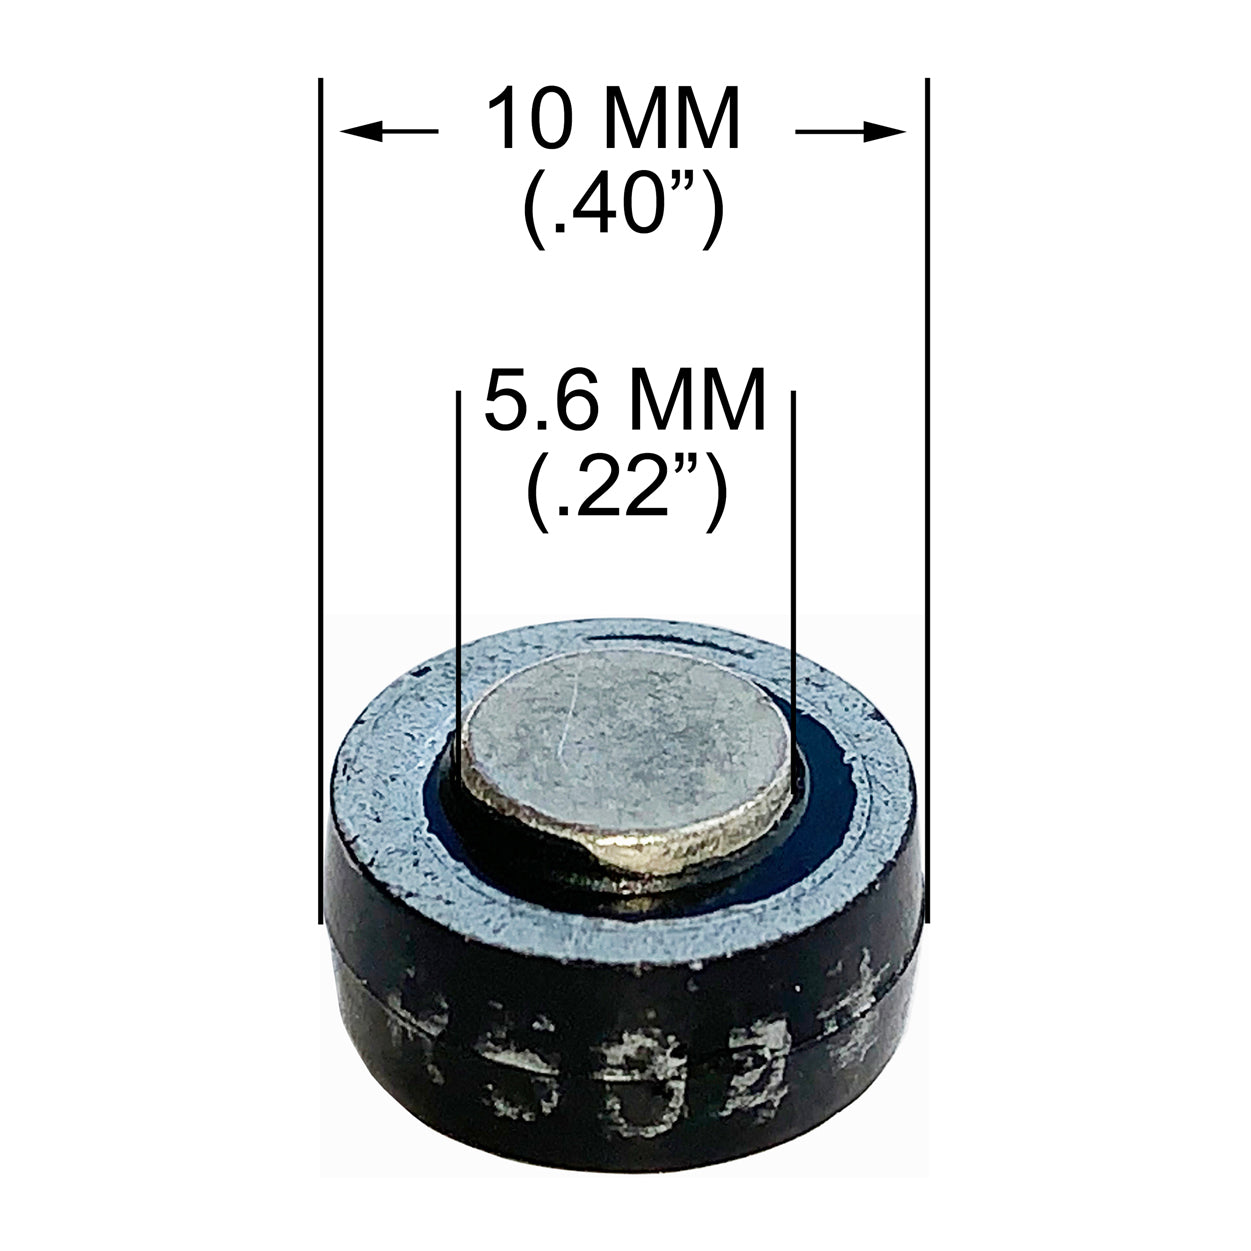 "Button Diode, 10MM (.40"") 50 Amp, 400 PRV Solderable Tin-Plated Contacts"